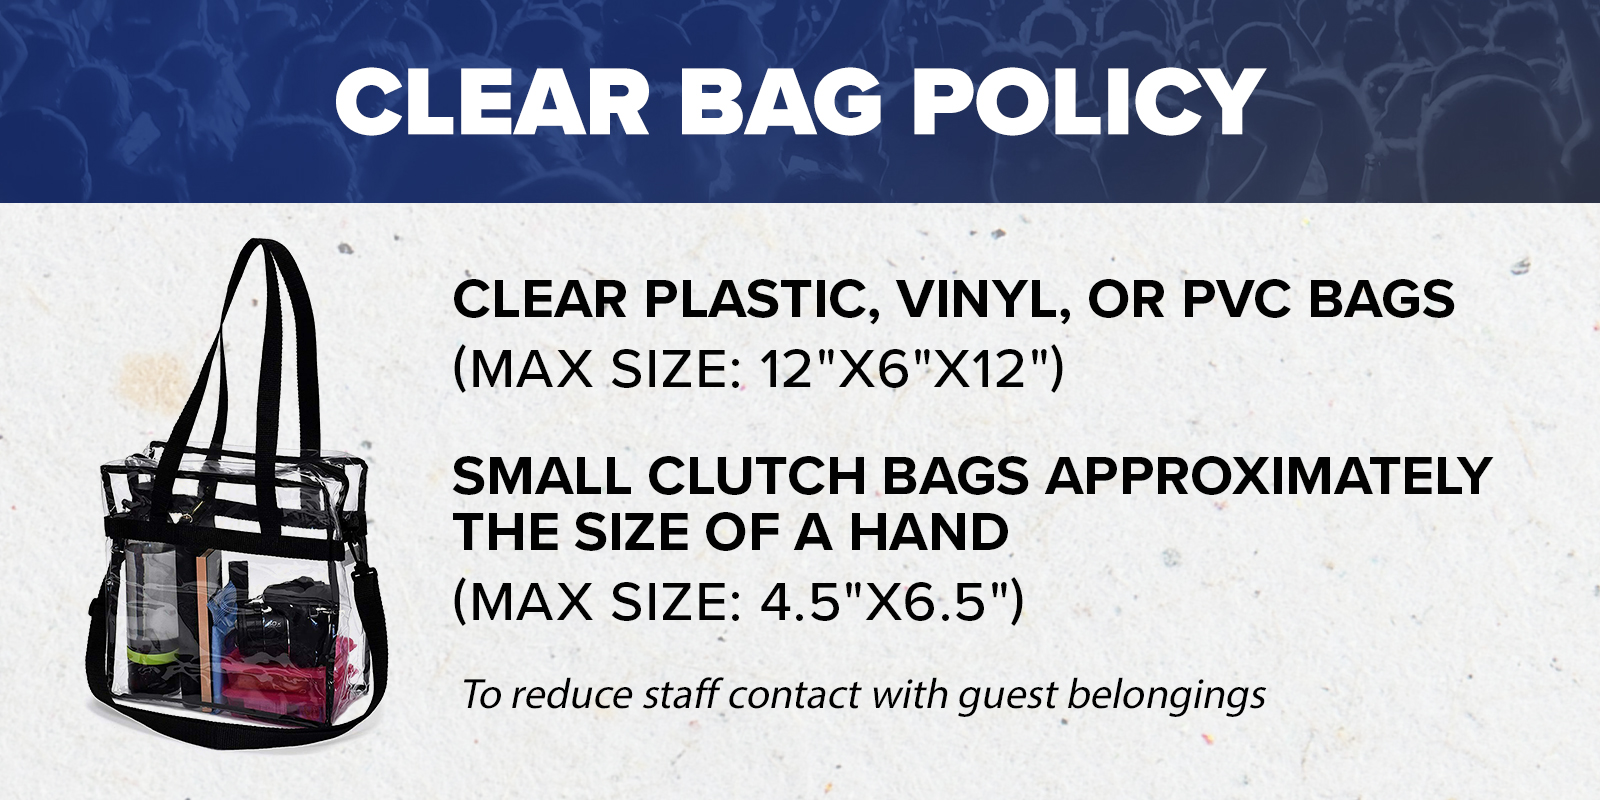 Clear Bag Policy - Clear Plastic, Vinyl, PVC Bags - Max Size - 12in x 6in x 12in - Small Clutch Bags - Max Size - 4.5in x 6.5in to reduce staff contact with guest belongings